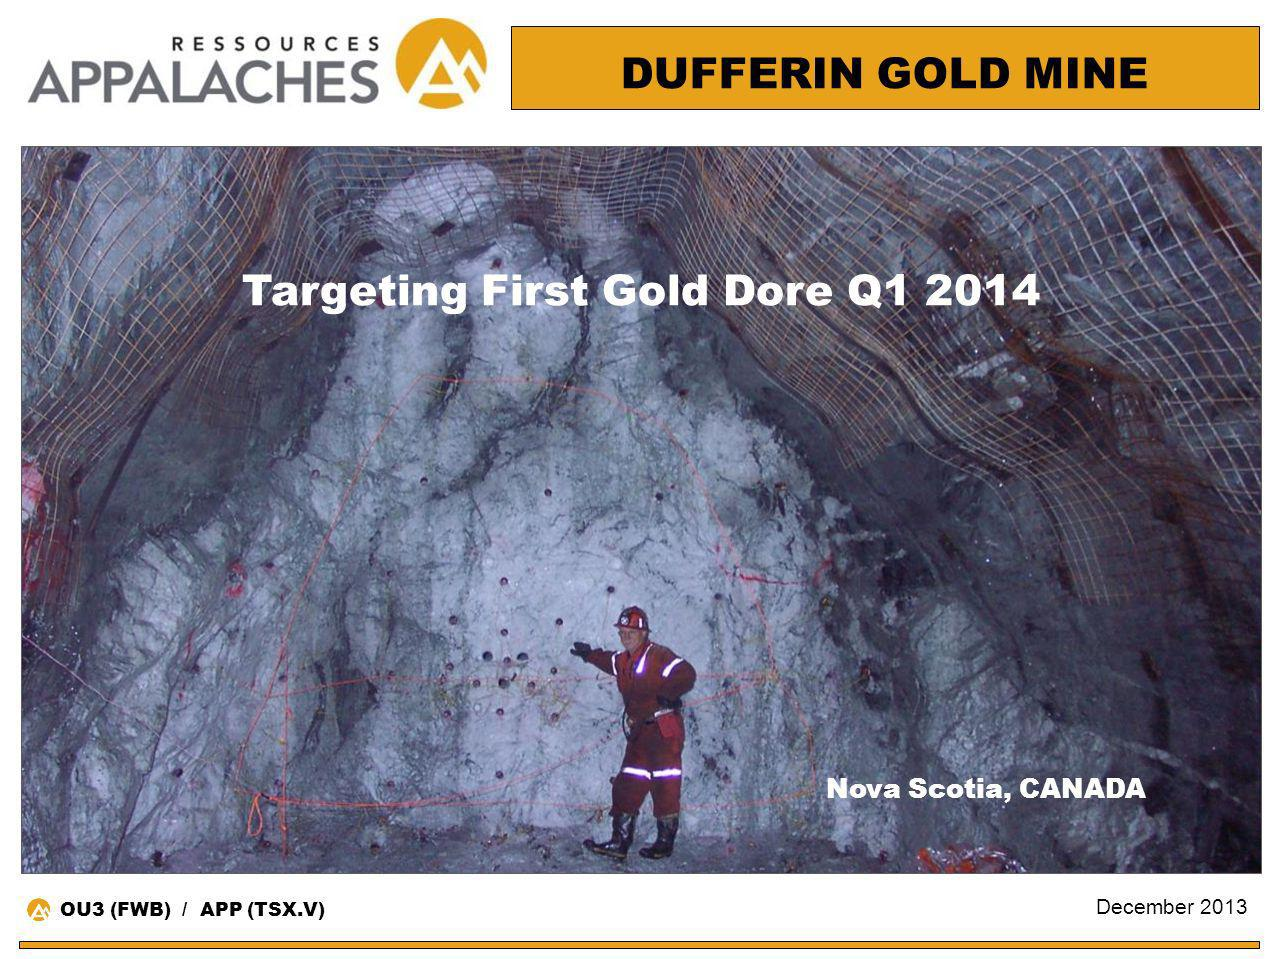 Targeting First Gold Dore Q1 2014